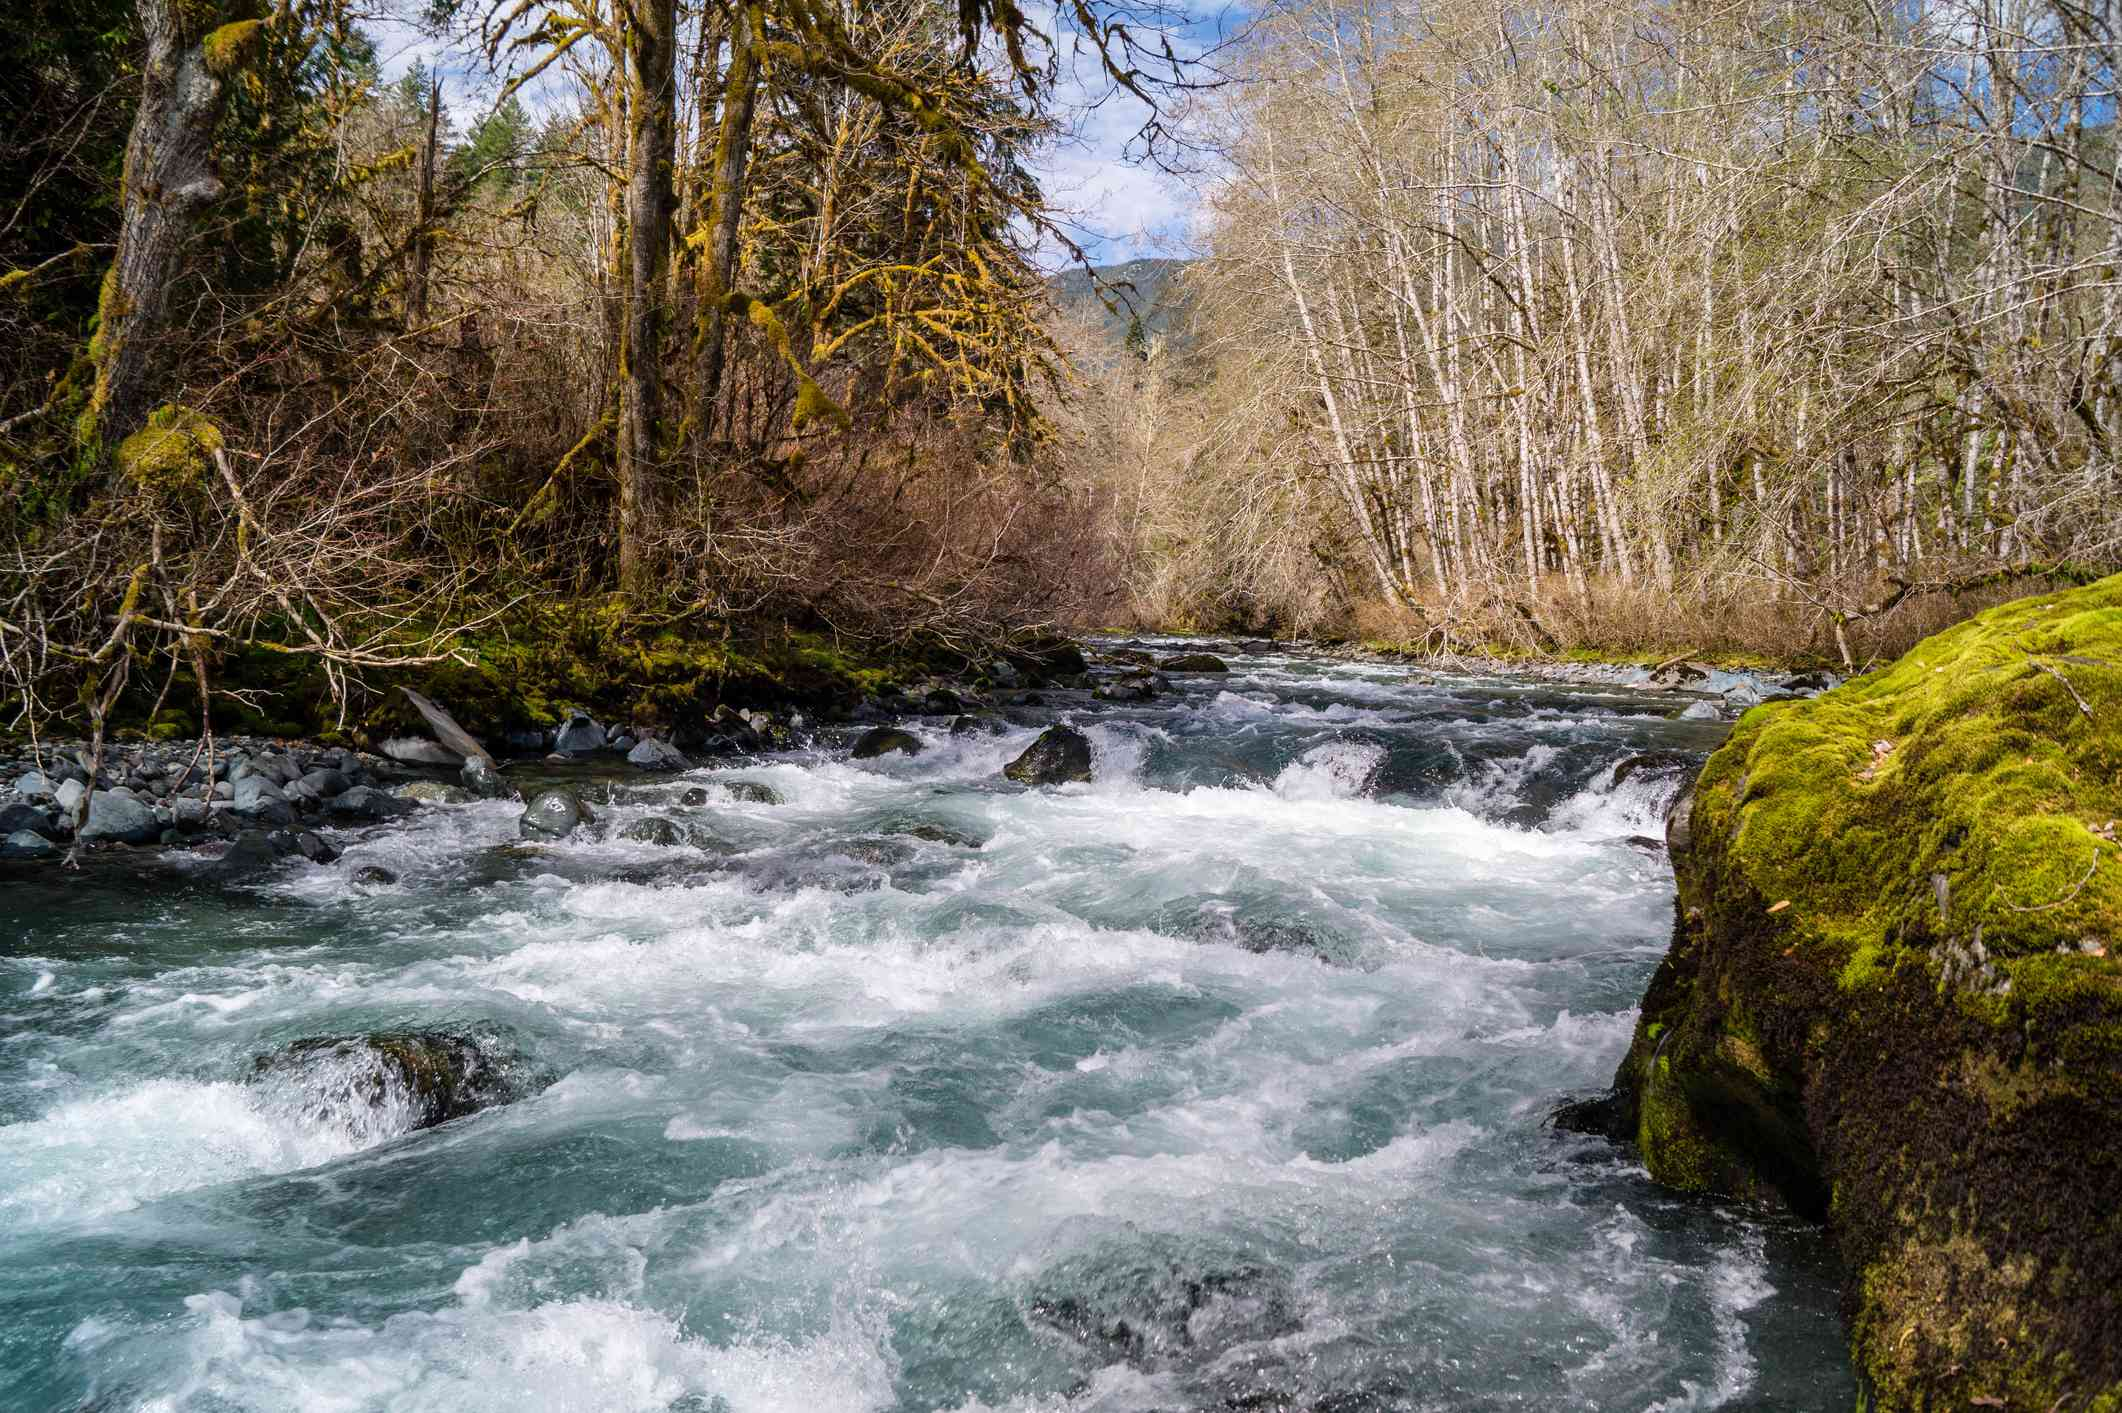 White water rapids on the Dosewallips River in Washington on the Olympic Peninsula surrounded by brown trees and a large, moss covered rock